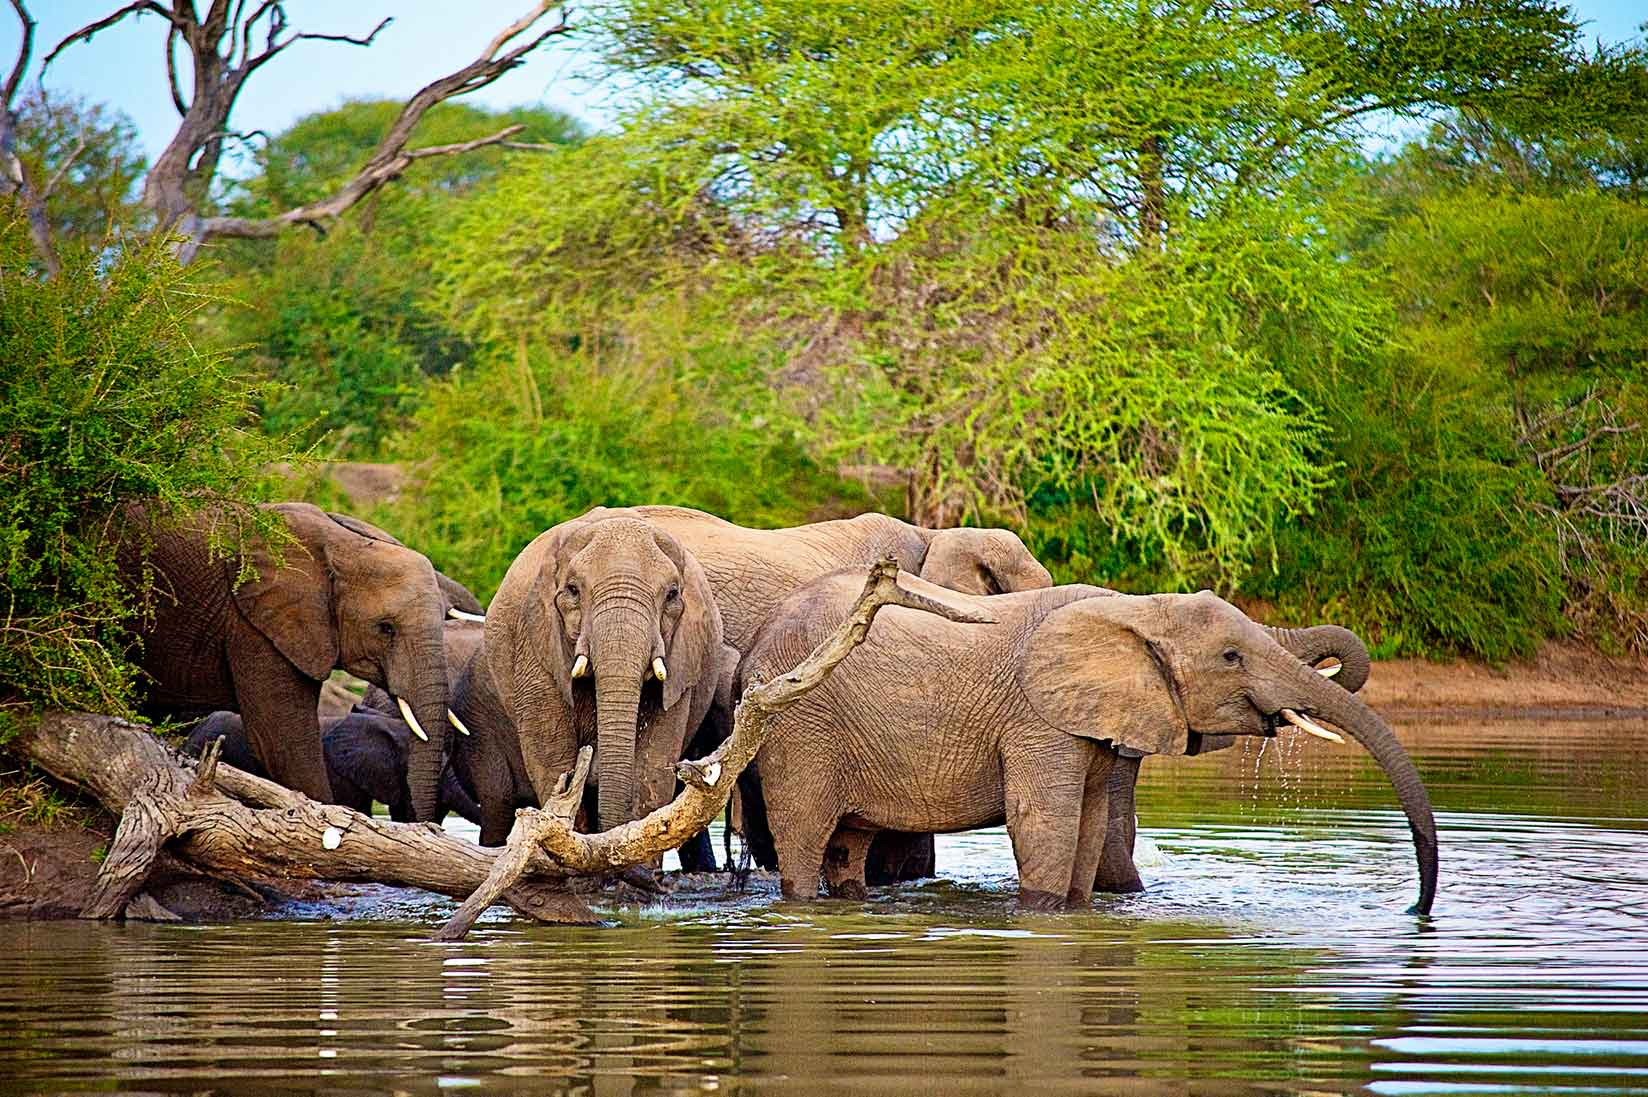 Elephant Herd Swimming - Image : Shannon Benson